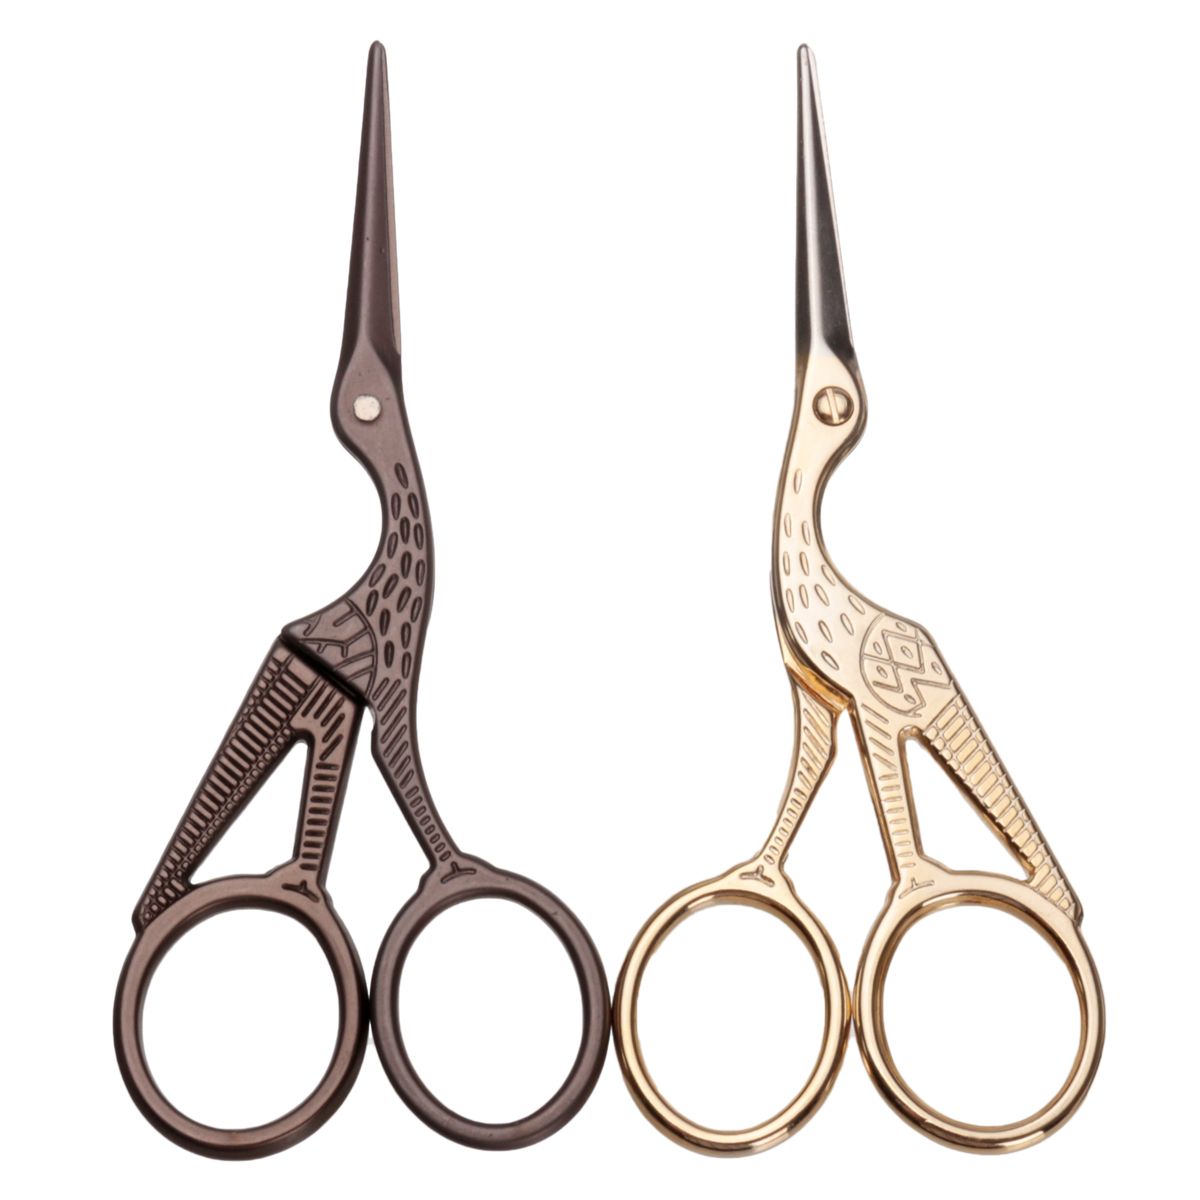 Stork Embroidery Scissors Eyebrow Ear Hair Trimmer Gold Bronze SKU236021